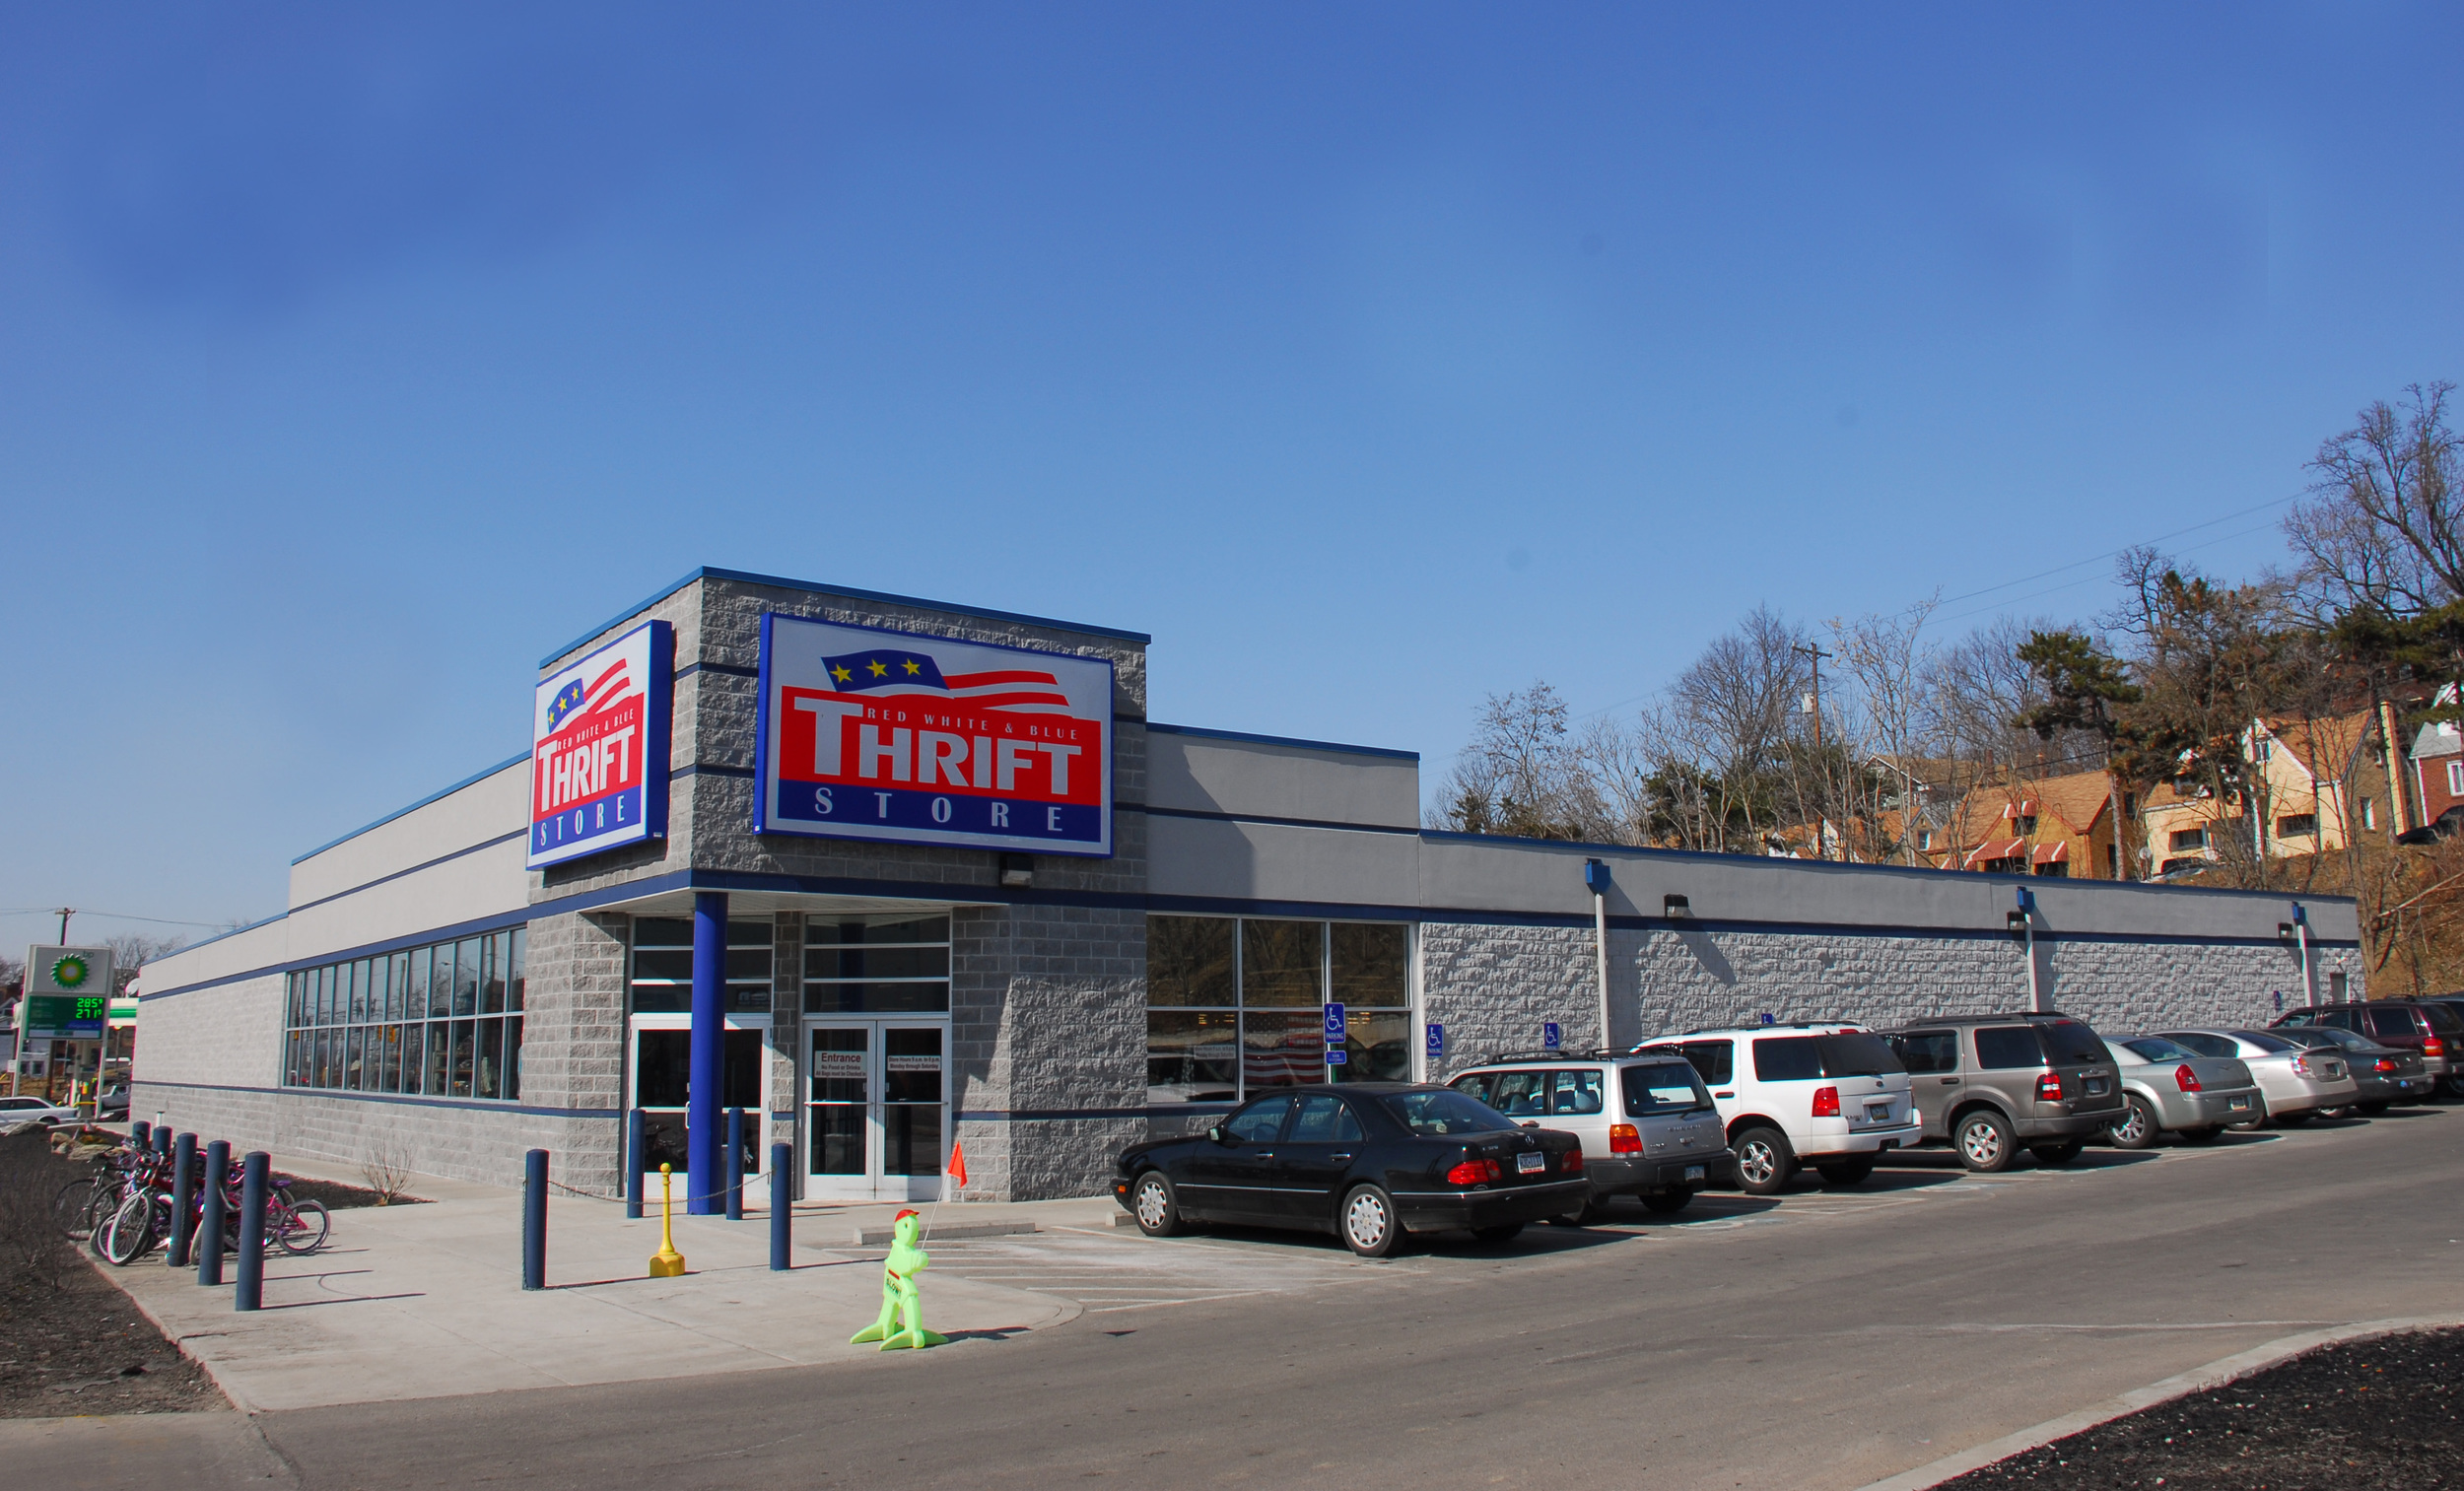 Red White and Blue Thrift Store, Avalon, Allegheny County